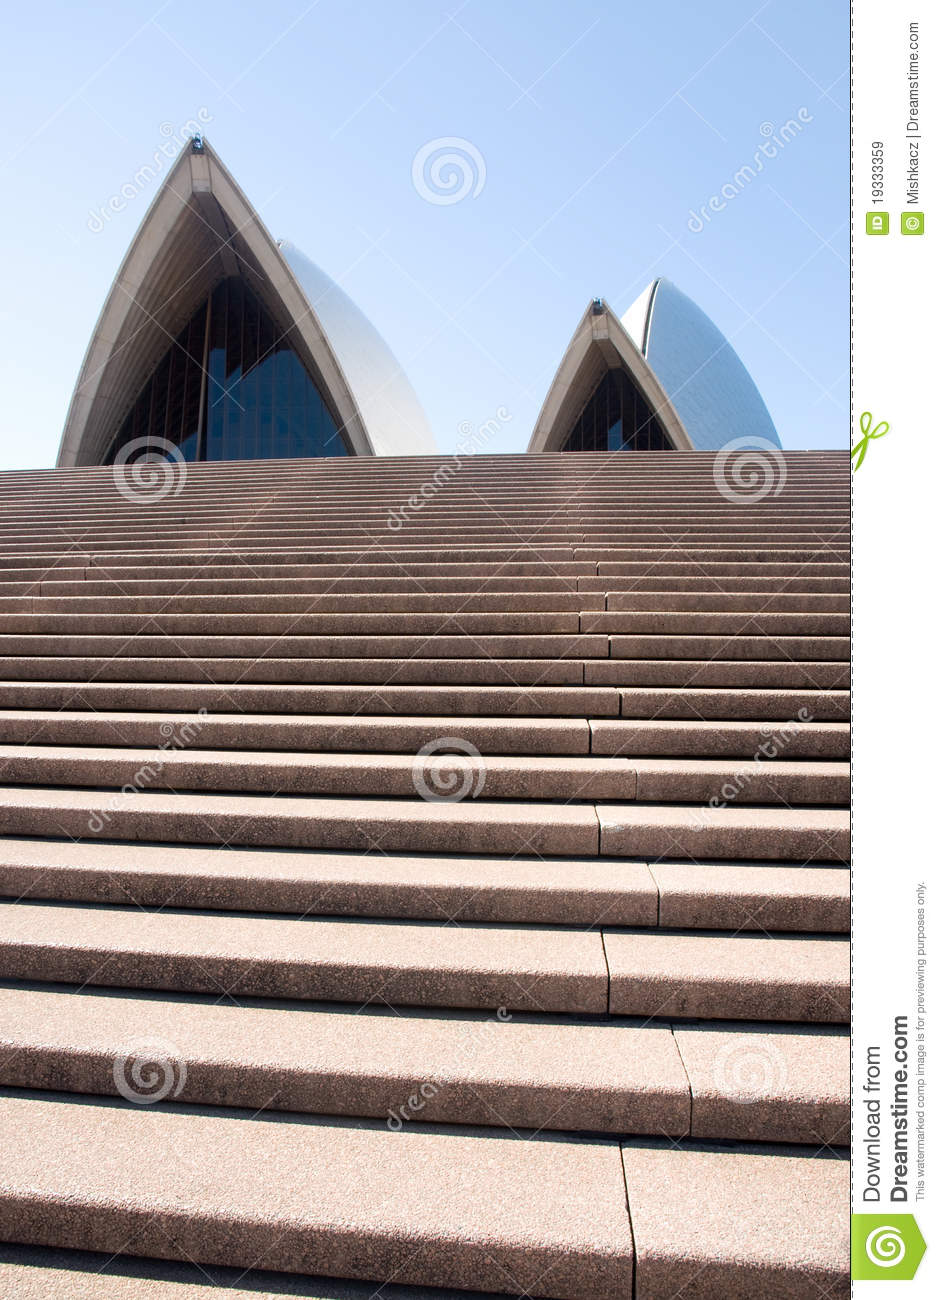 how to draw the sydney opera house step by step